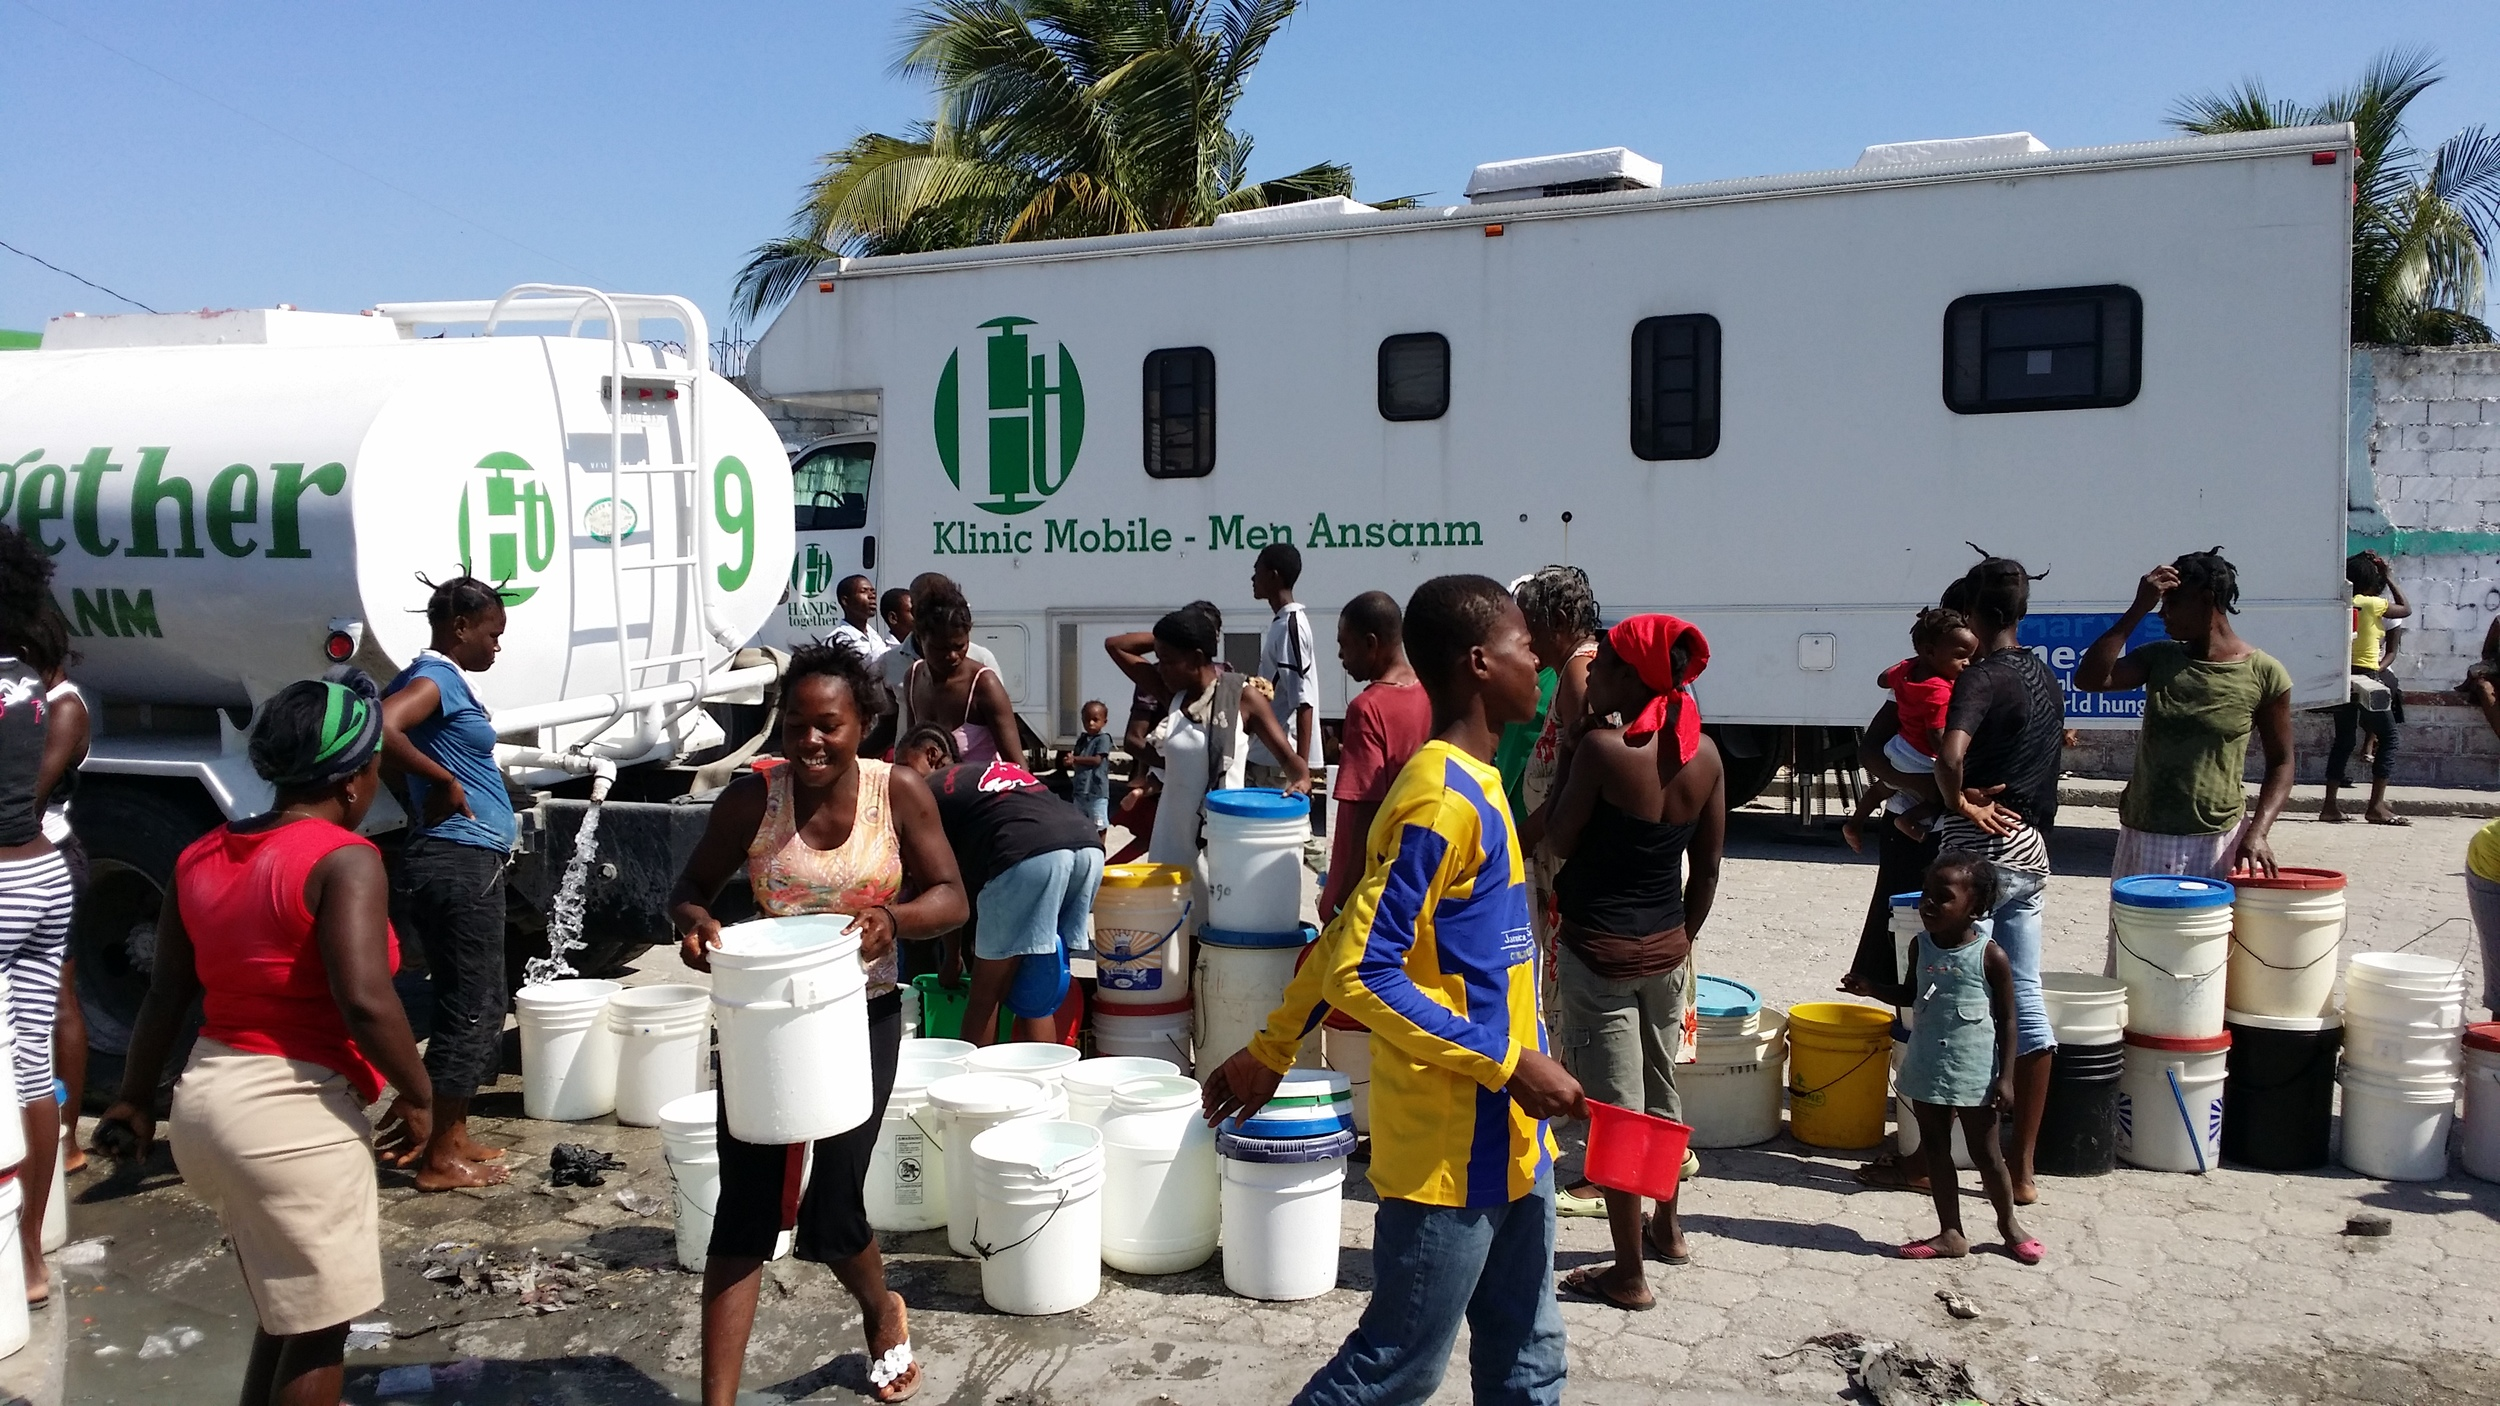 HT Mobile Medical unit and water truck provide help to residents of Cite Soleil.